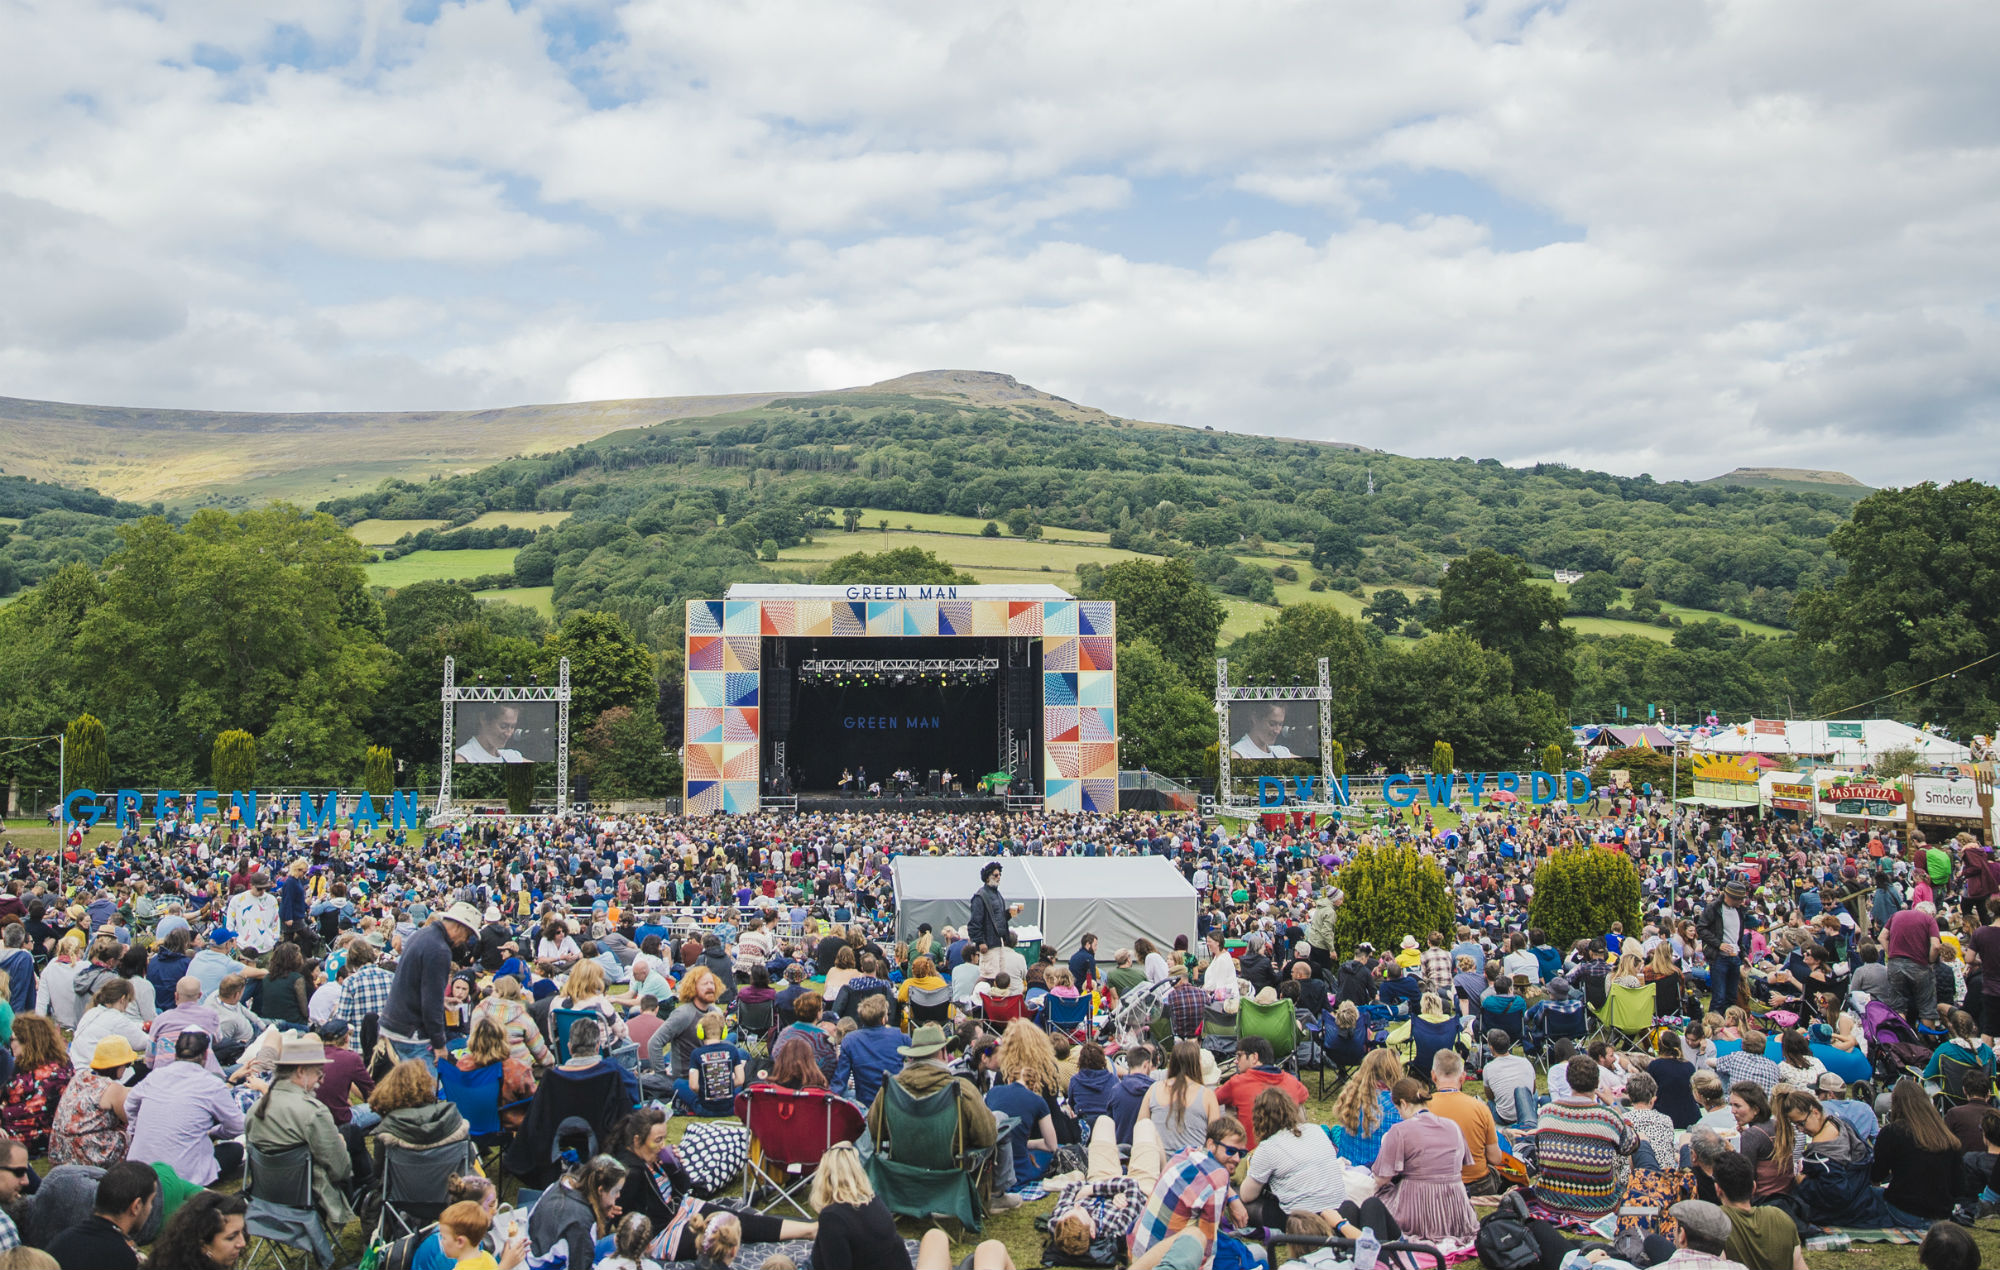 Green Man Festival announces 'Field of Streams' virtual event